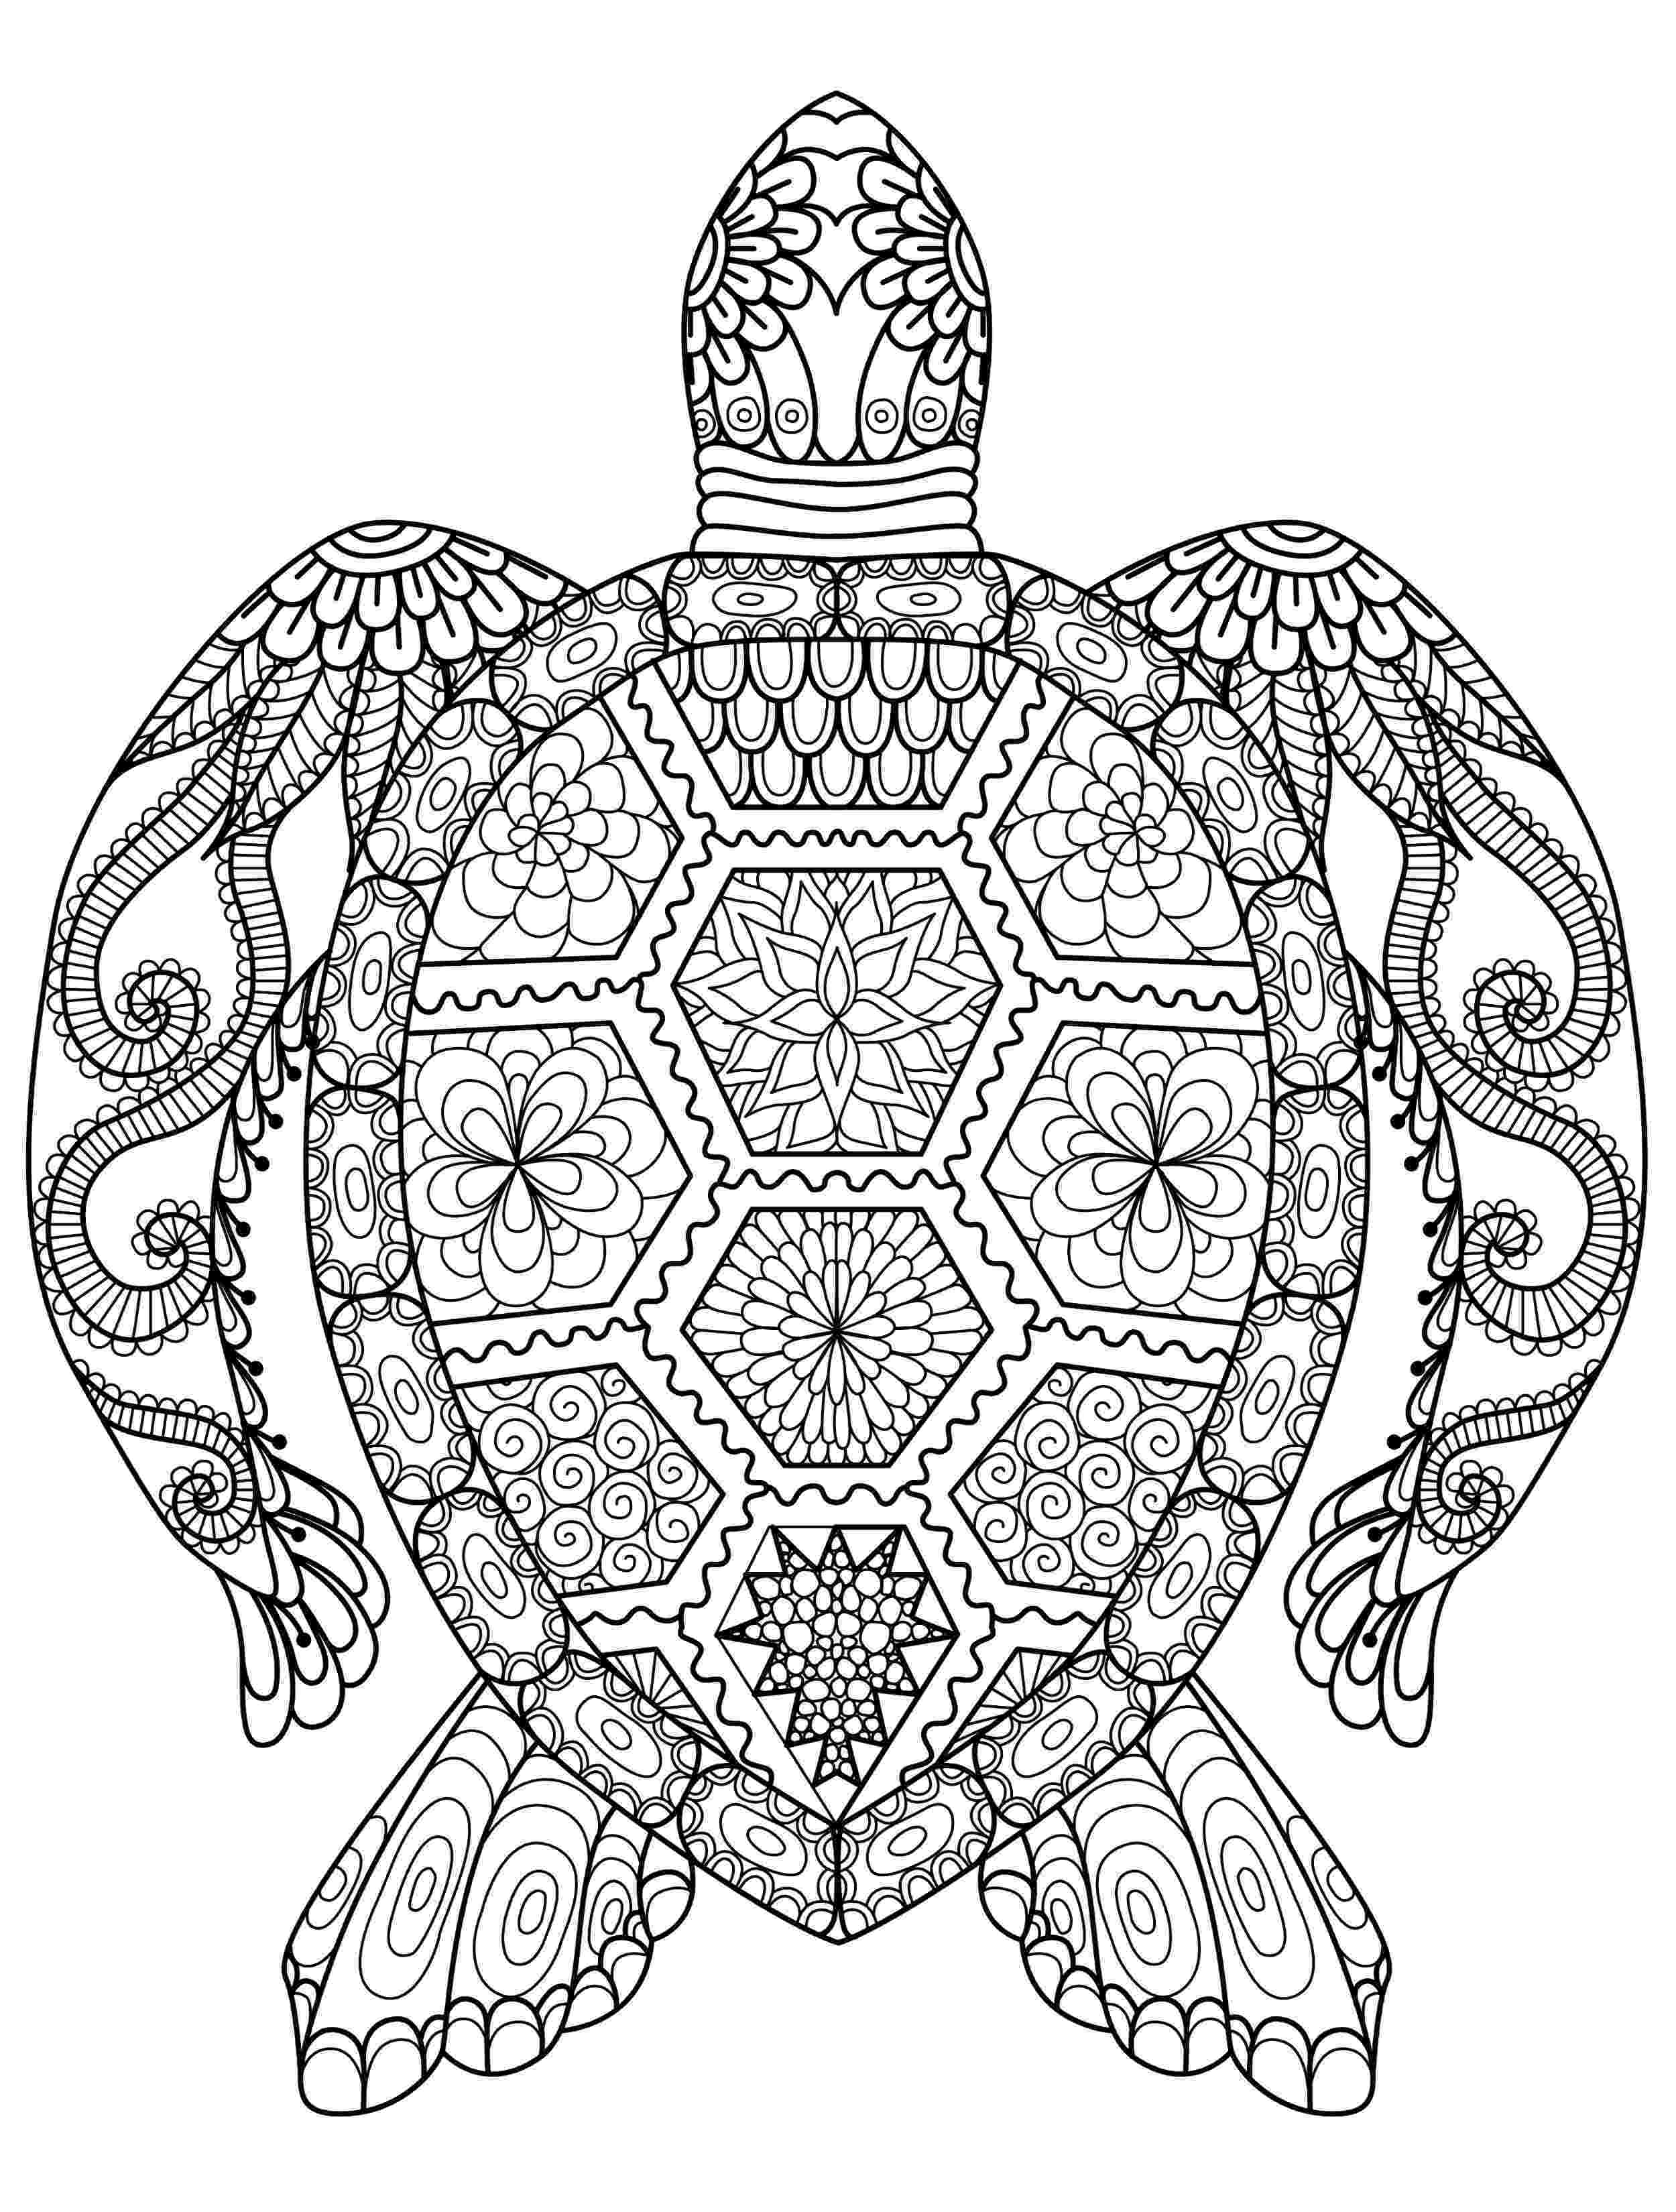 adult coloring pages animals adult coloring pages animals best coloring pages for kids adult pages coloring animals